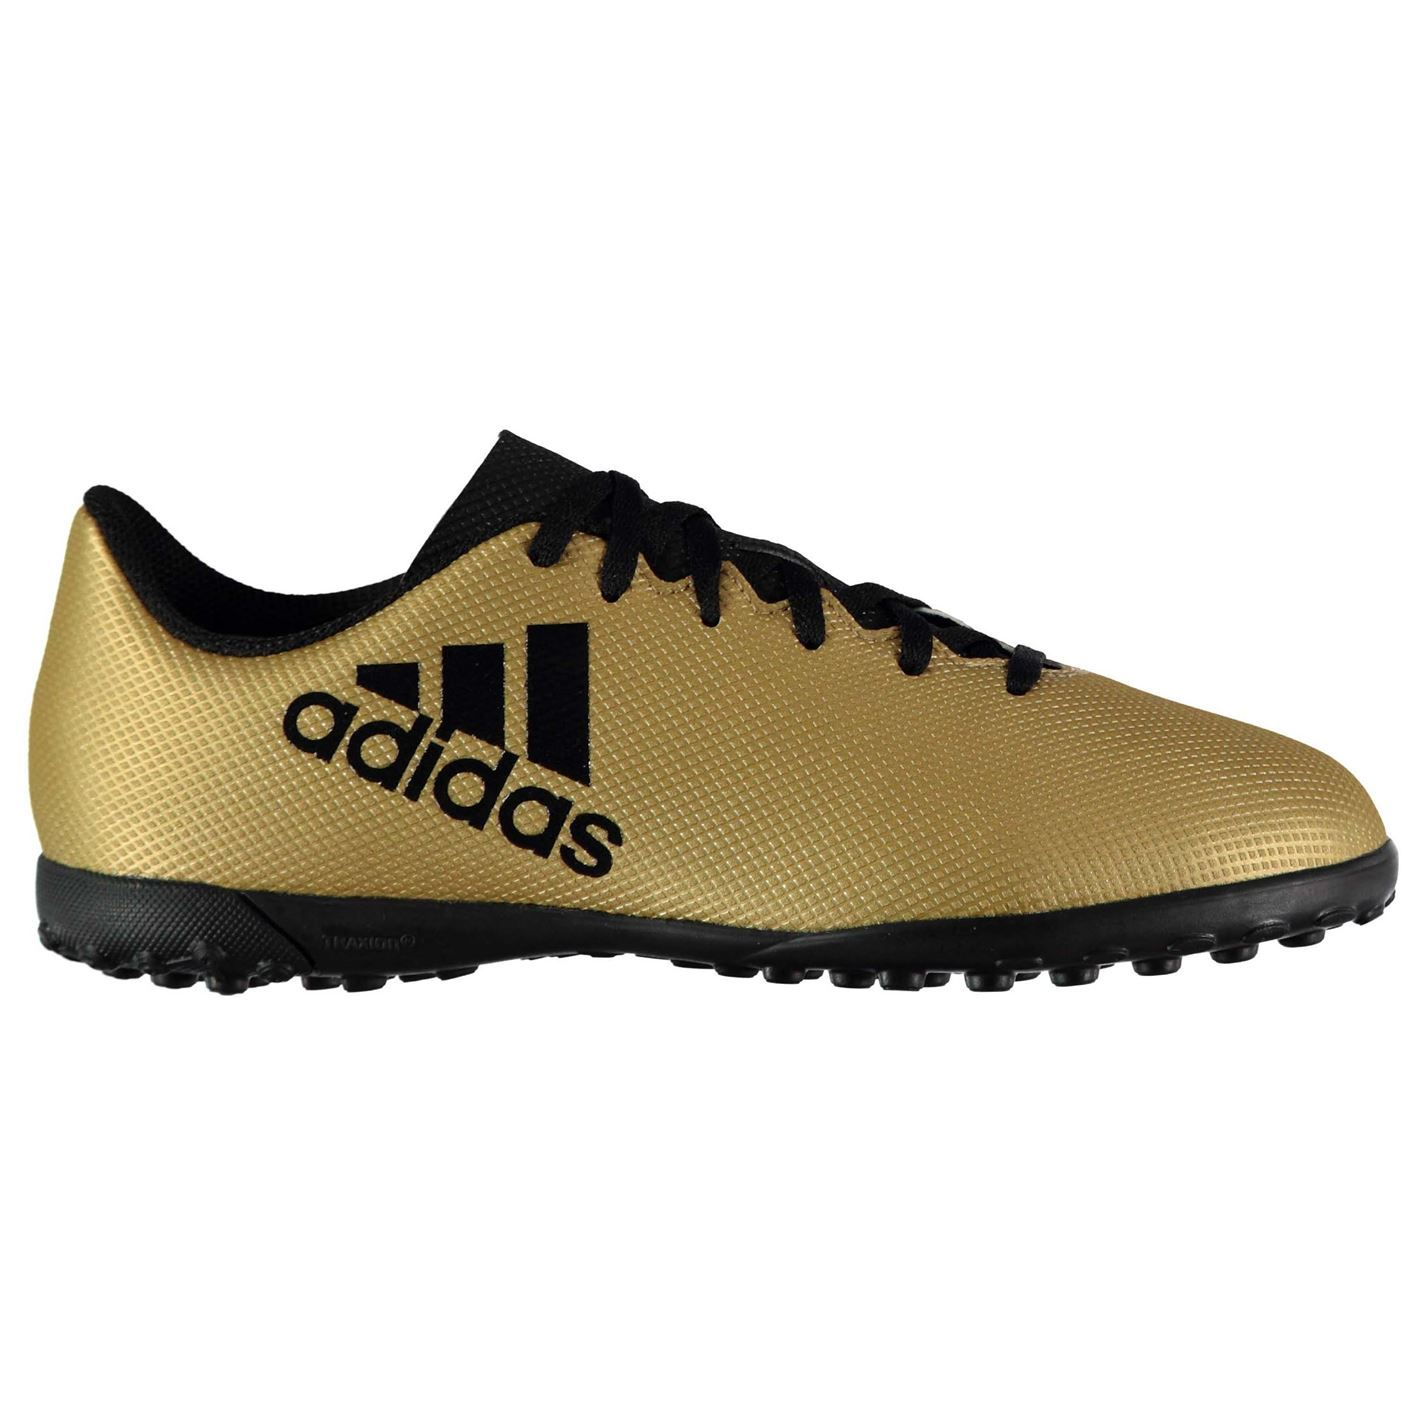 0d0b2e5cf adidas Kids X Tango 17.4 Childs Astro Turf Trainers Football Boots Lace Up